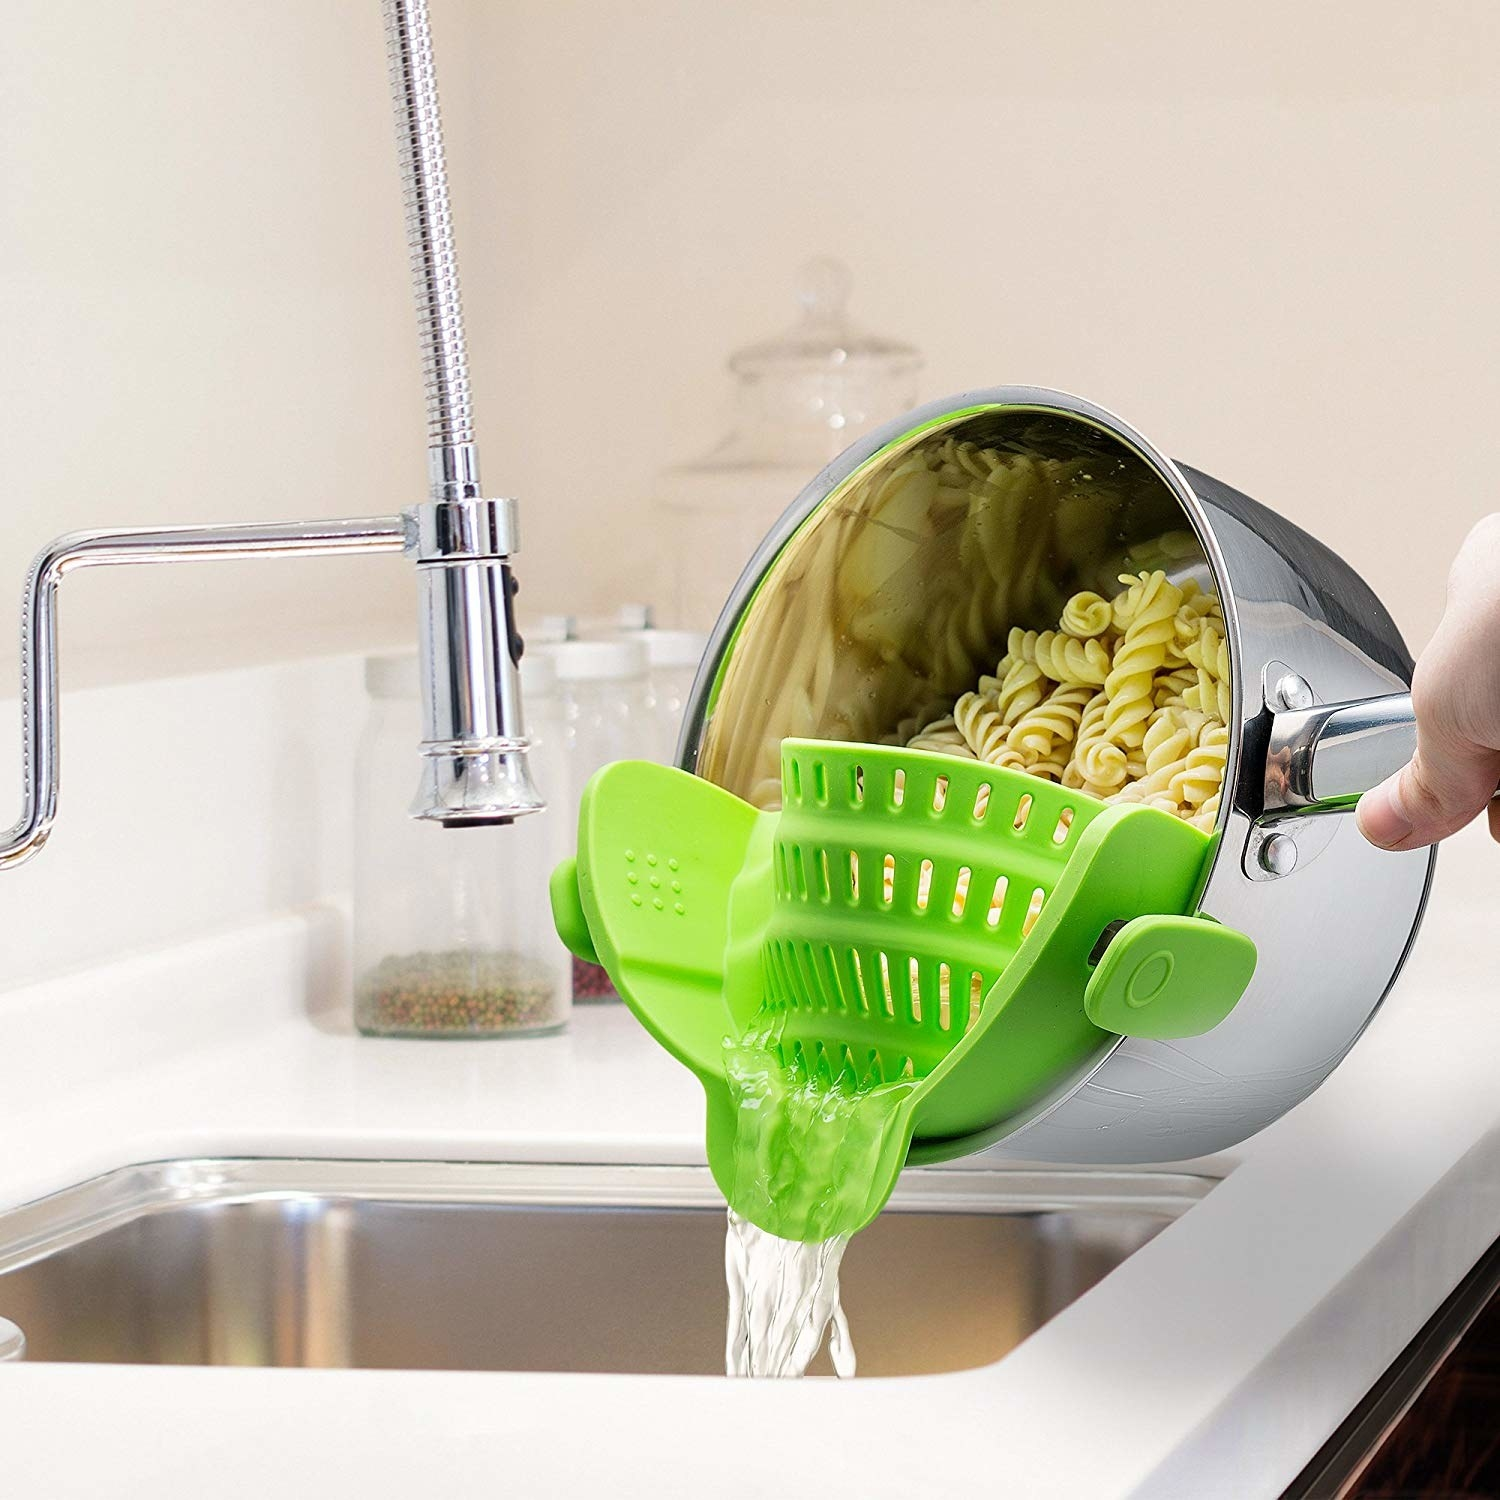 A model pouring out pasta water with one hand, with the green strainer clipped on the pot